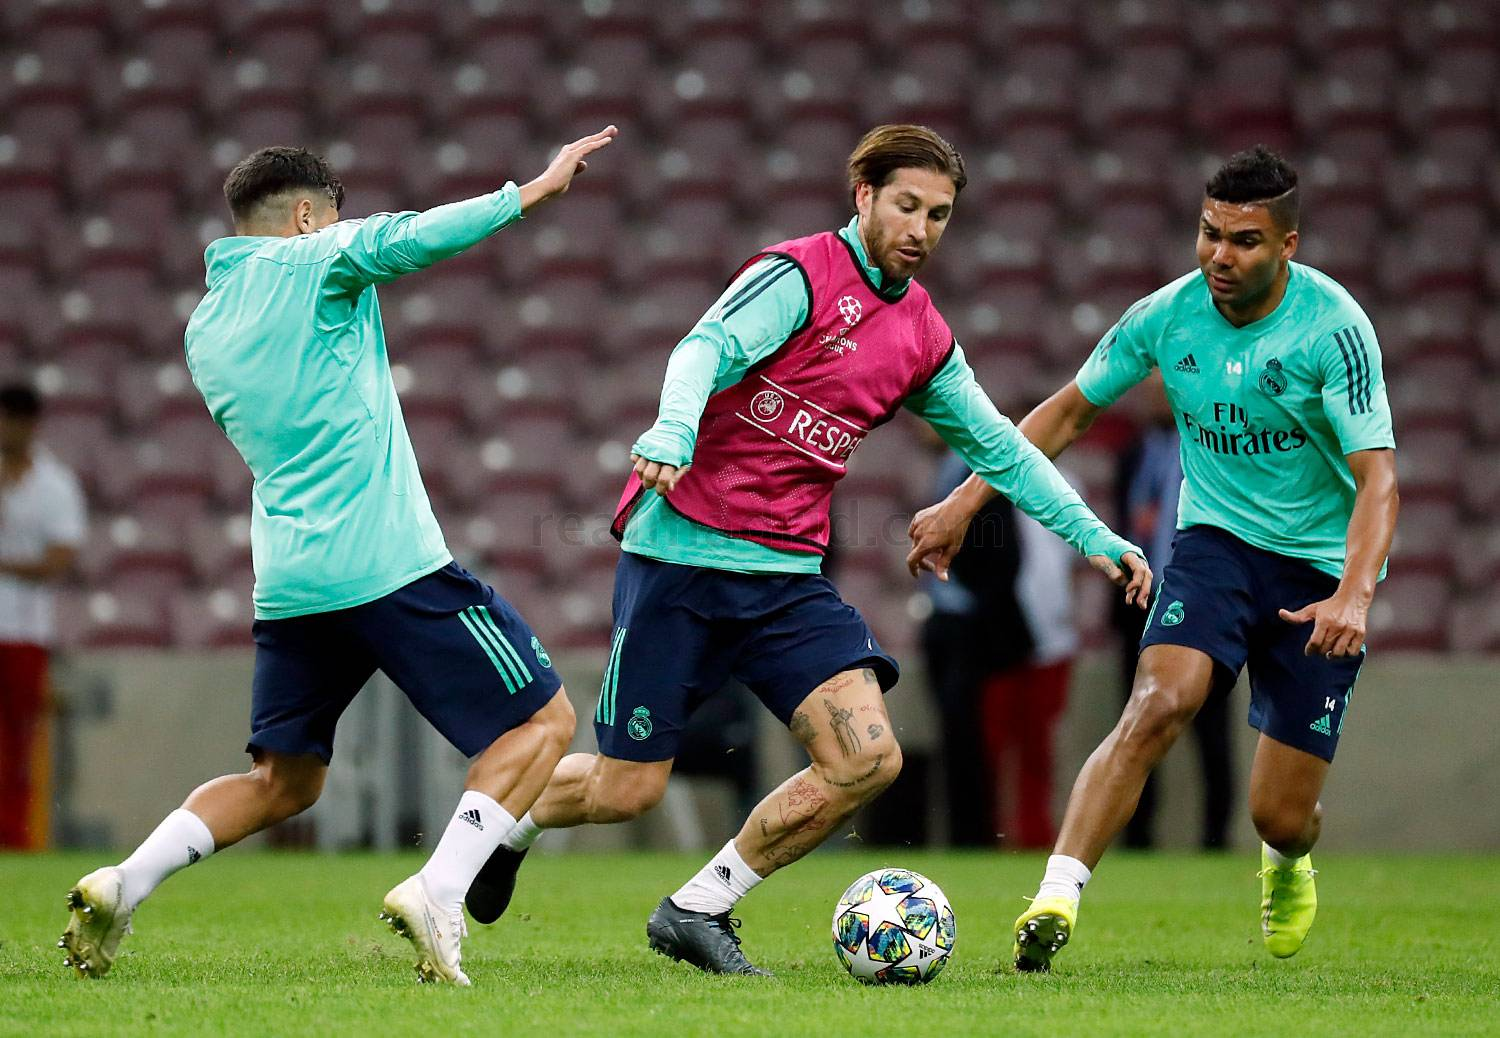 Real Madrid - Entrenamiento del Real Madrid en Estambul - 21-10-2019